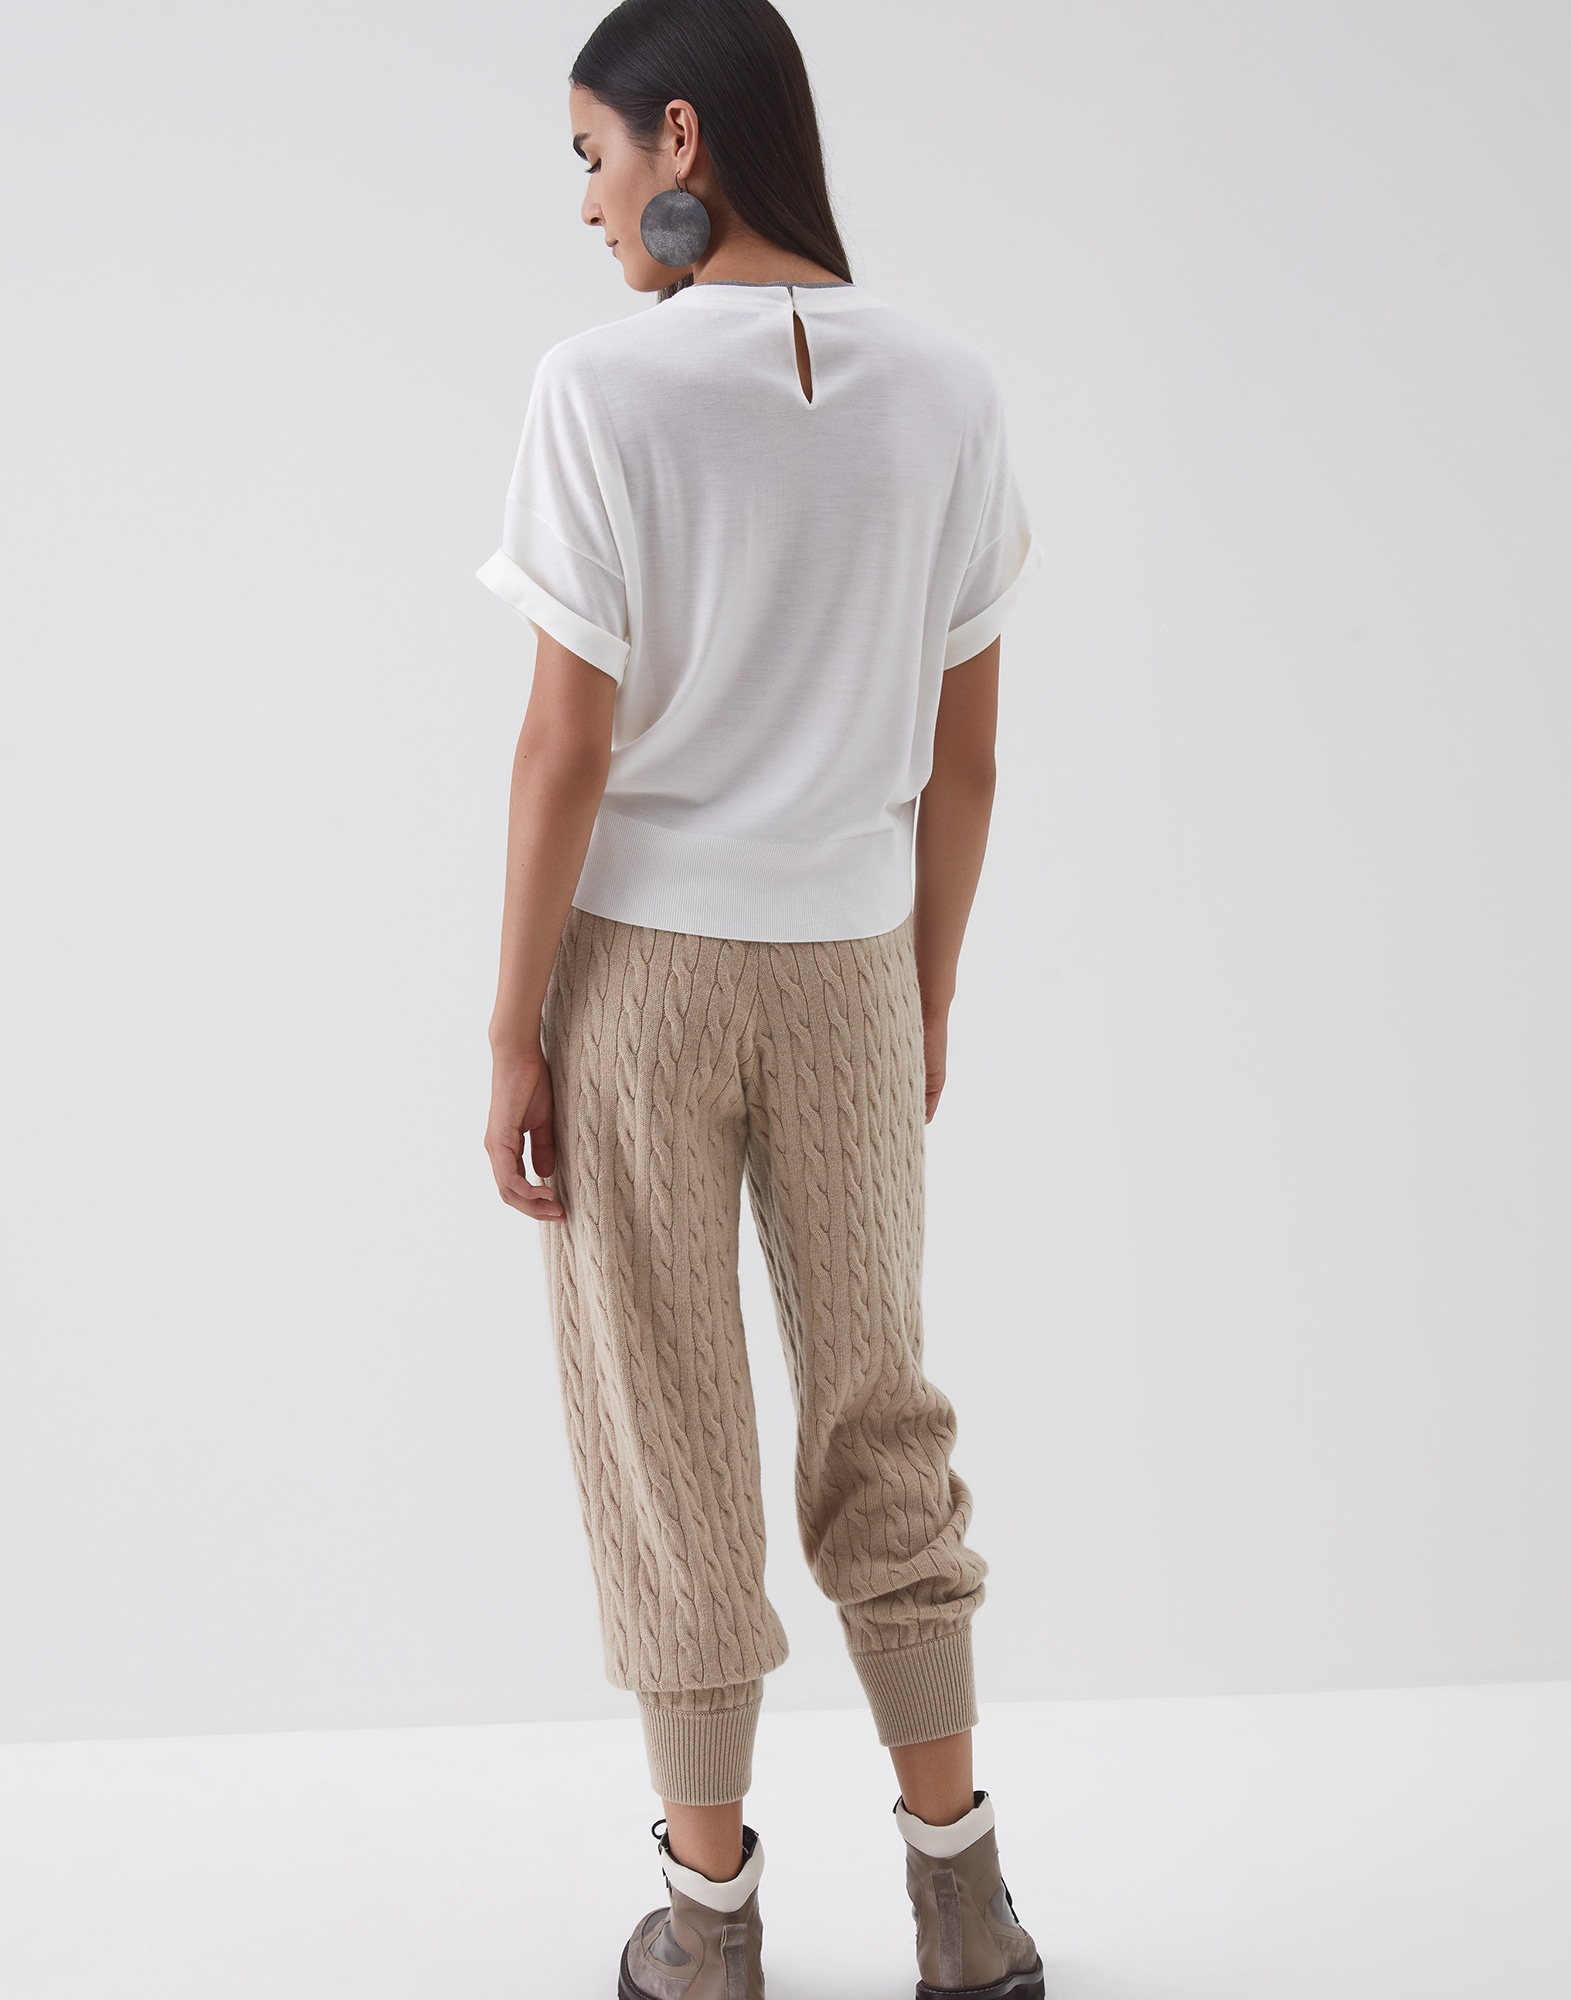 Crewneck Sweater White Woman 2 - Brunello Cucinelli